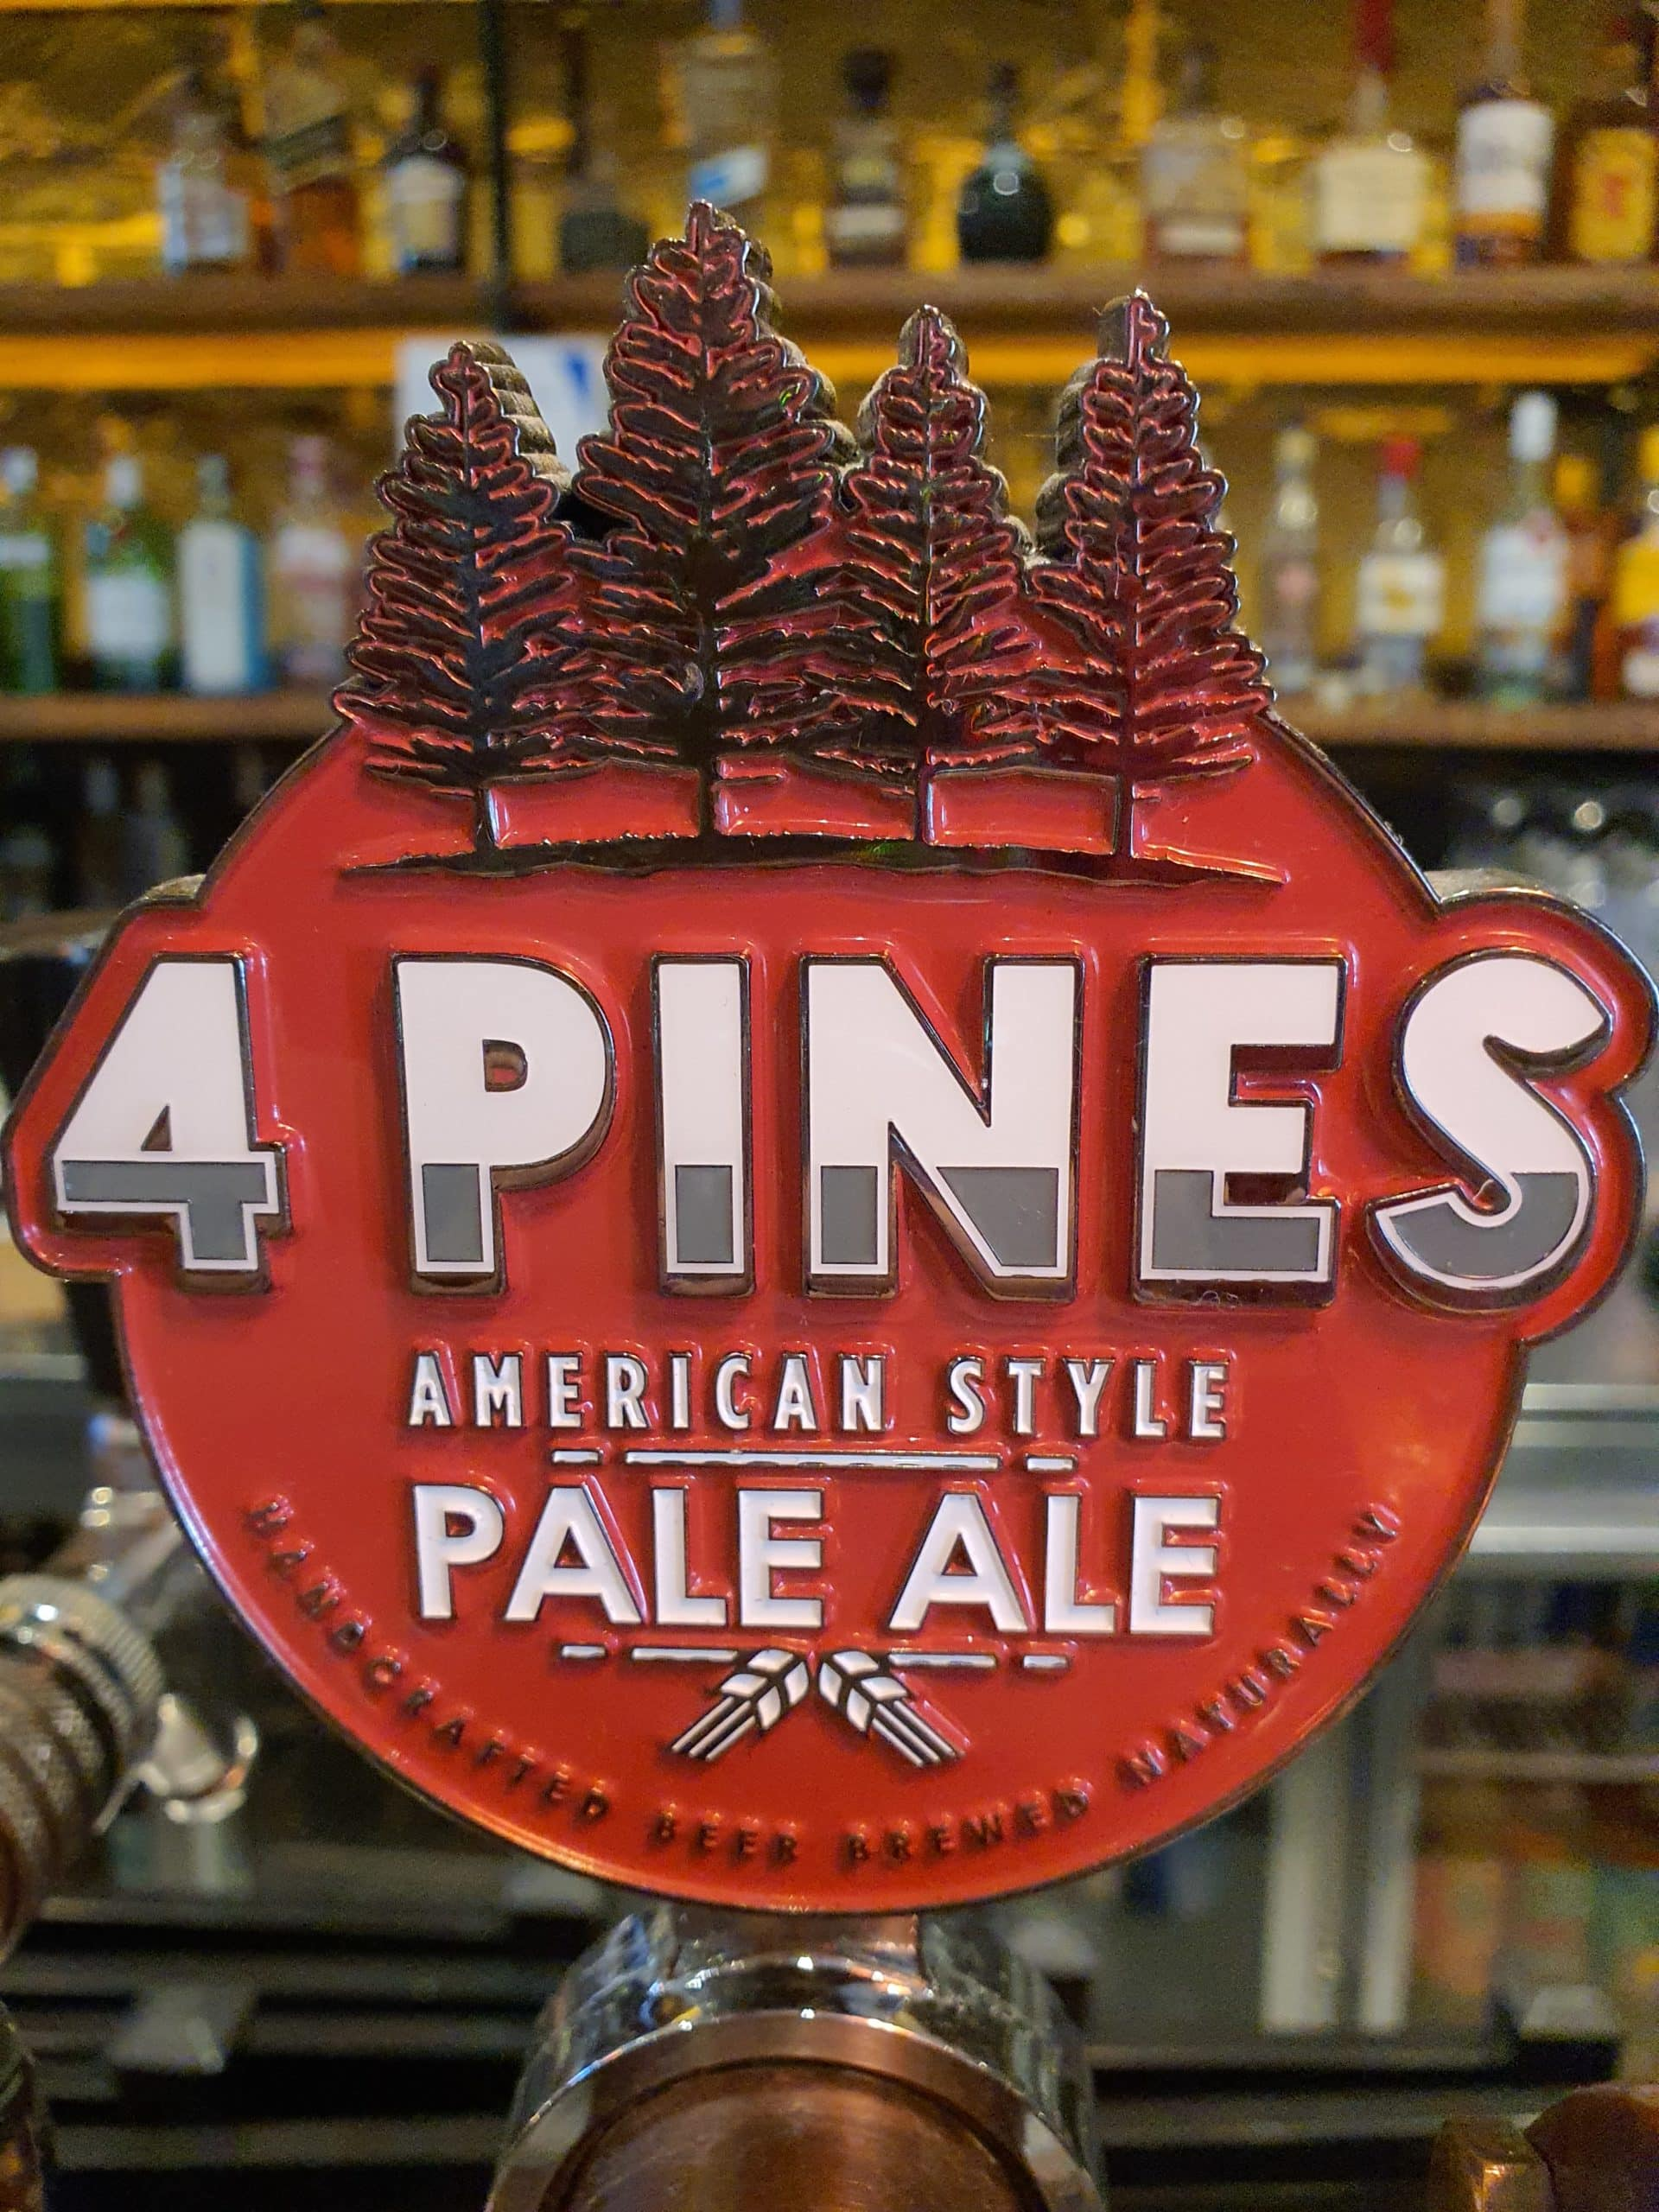 4 Pines American style Pale Ale